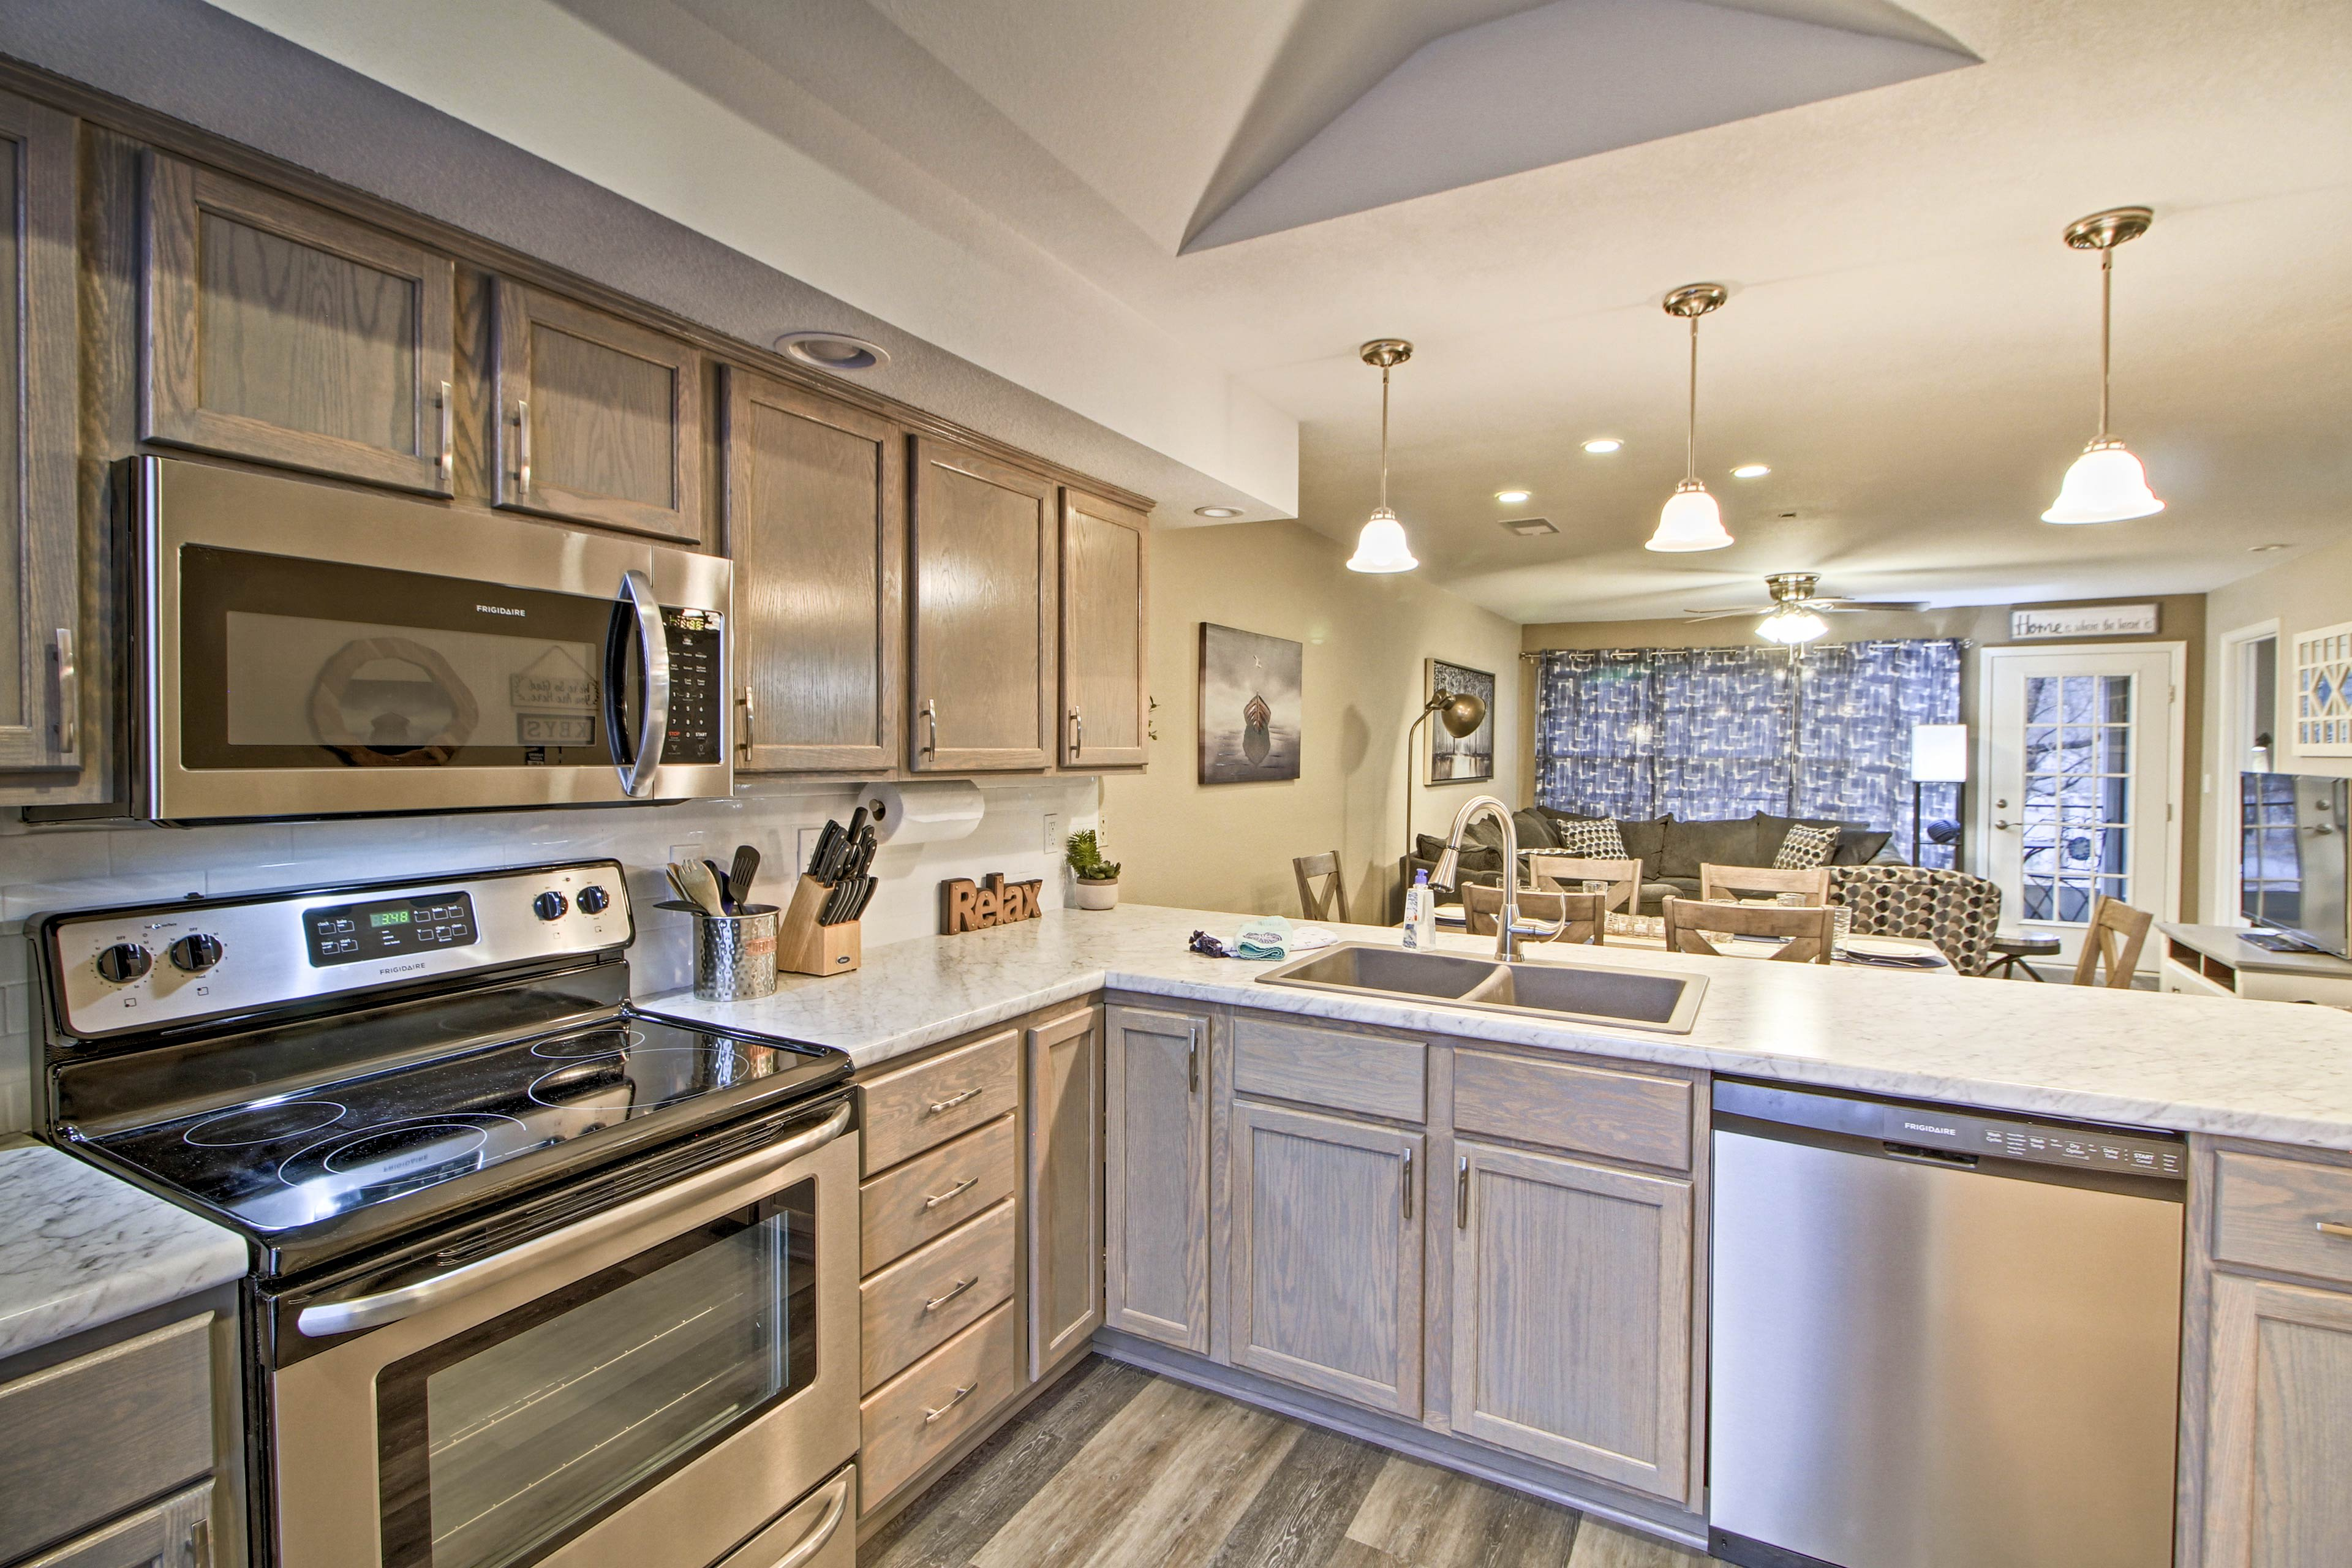 Stainless steel appliances elevate the fully equipped kitchen.